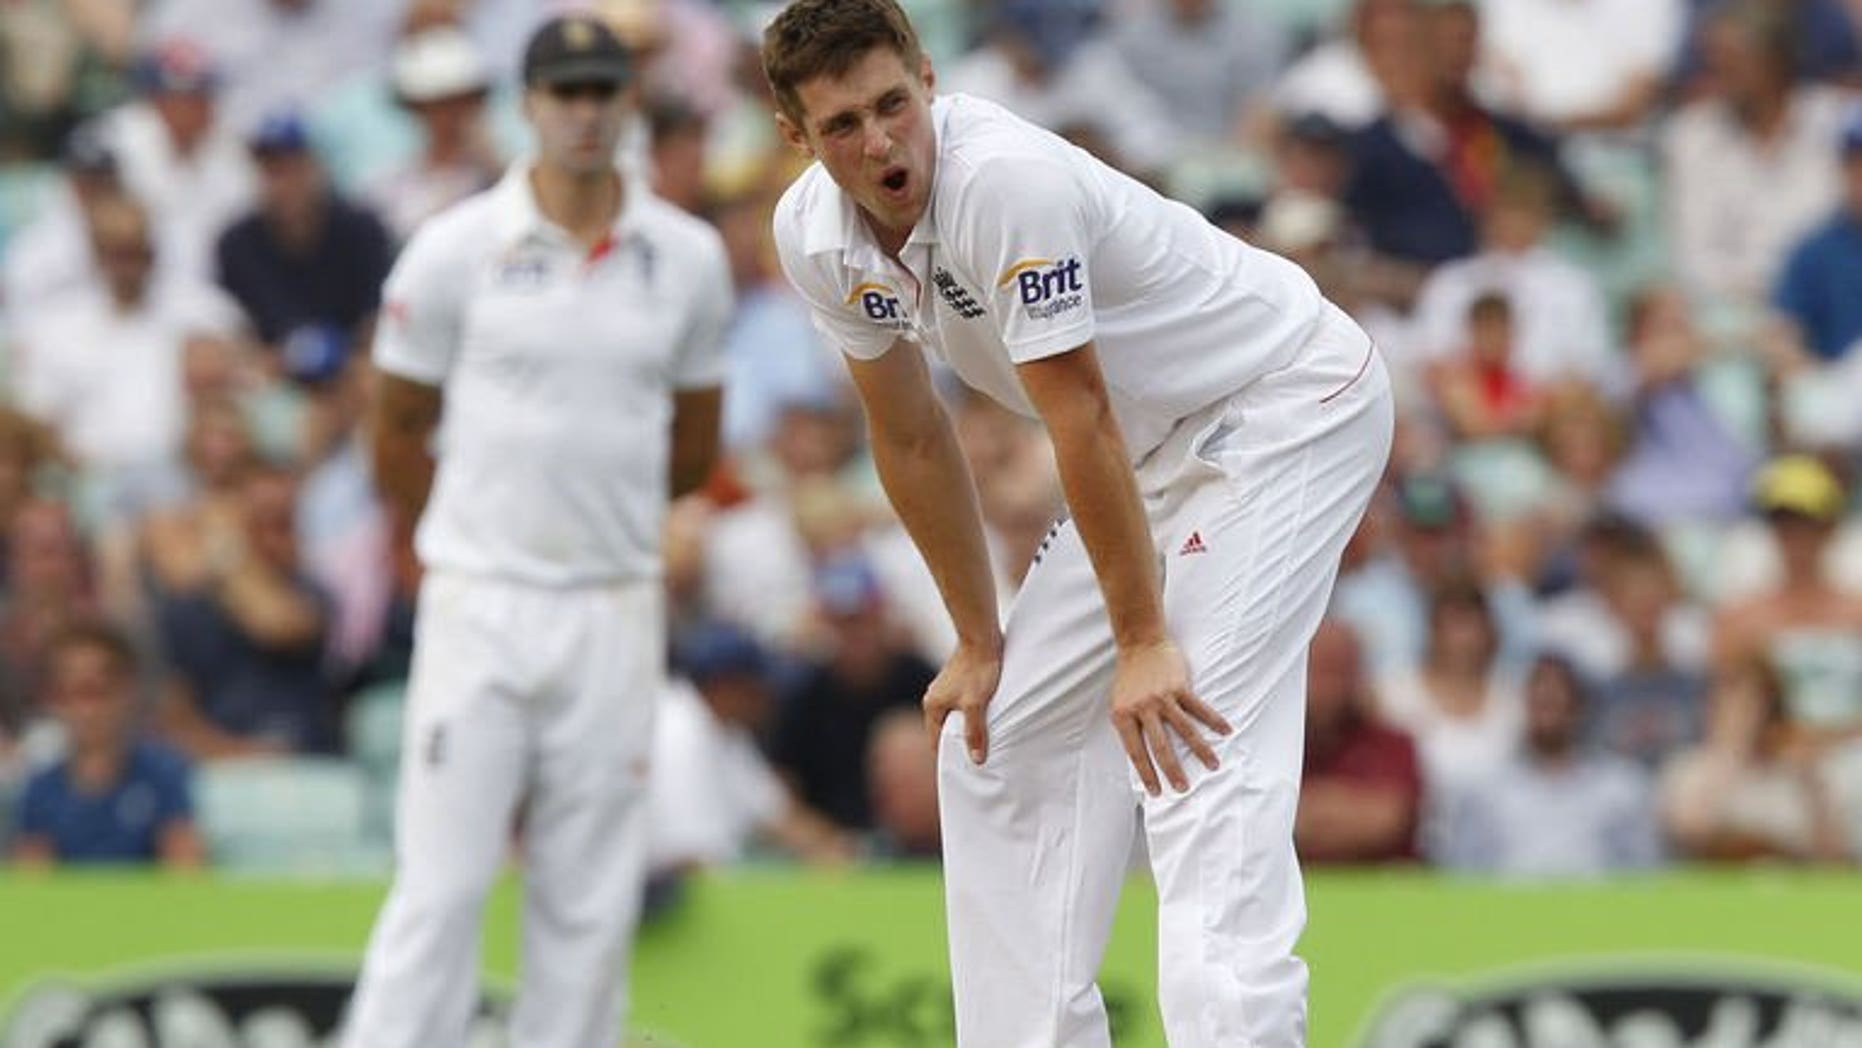 England's Chris Woakes reacts during play on the first day of the fifth Ashes cricket test match between England and Australia at The Oval cricket ground in London on August 21, 2013.